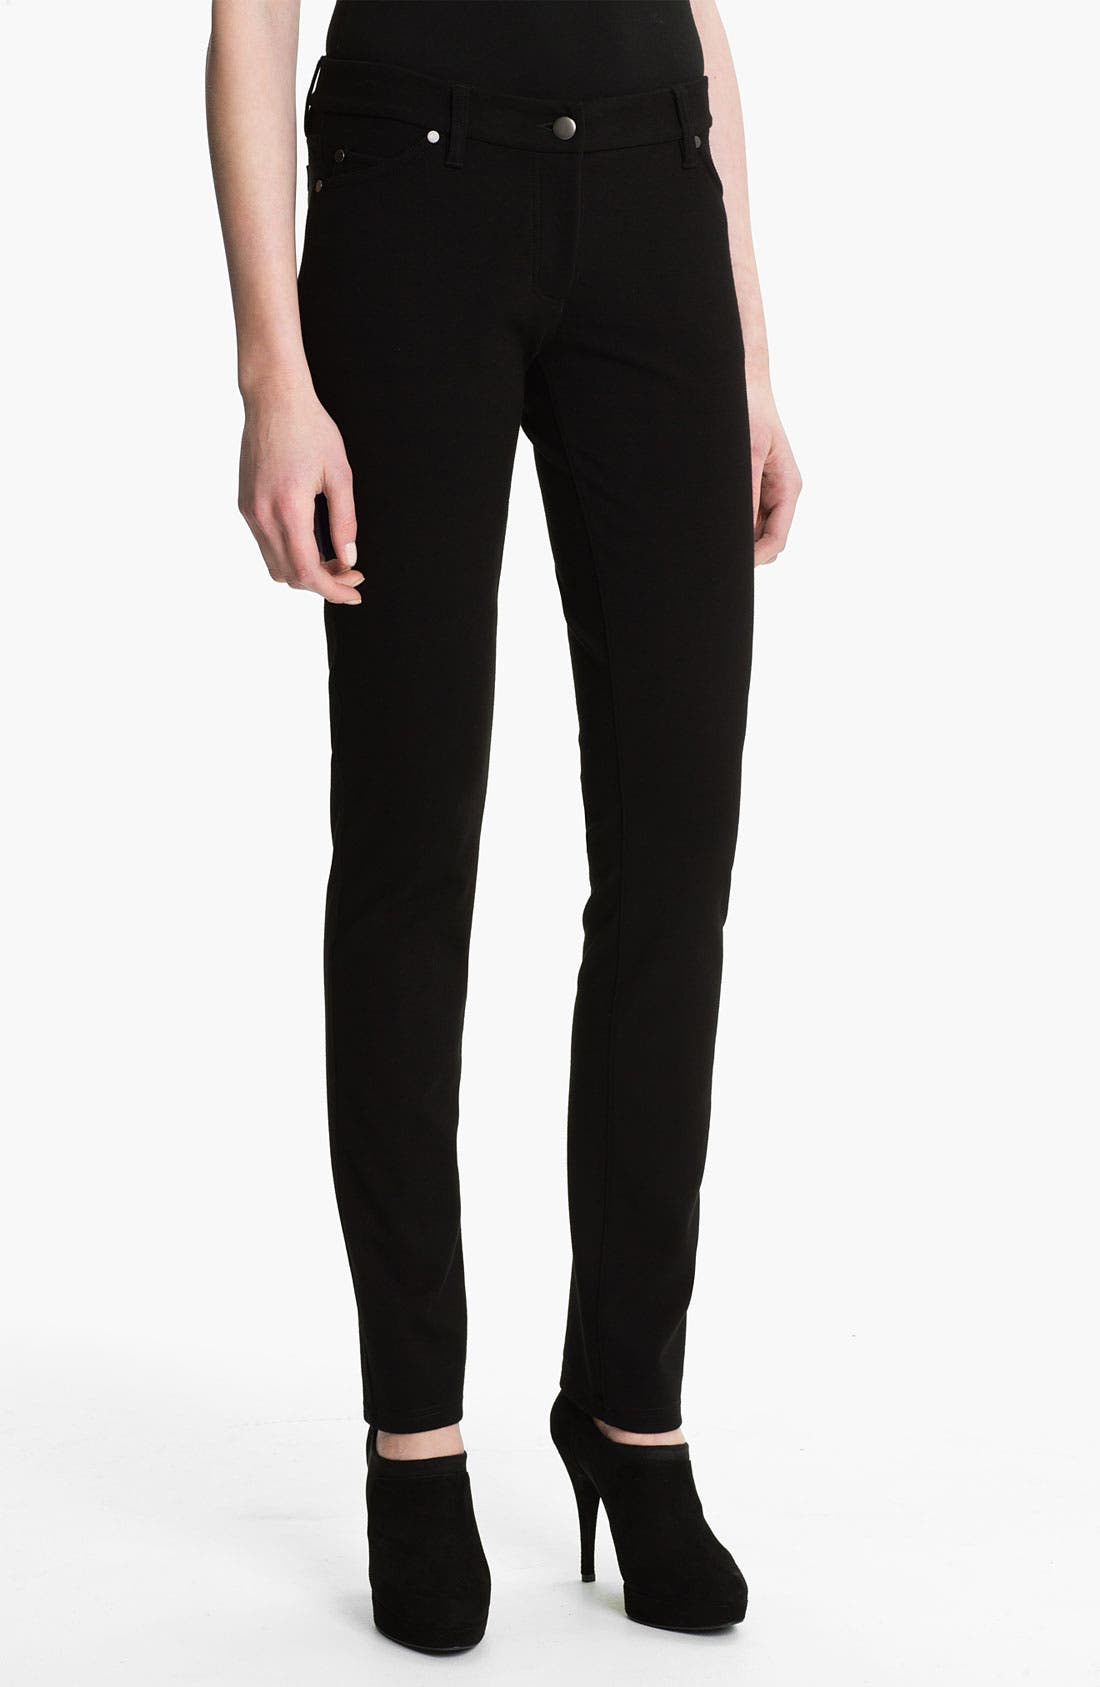 Alternate Image 1 Selected - Eileen Fisher 'Rock Star' Stretch Ponte Jeans (Regular & Petite)